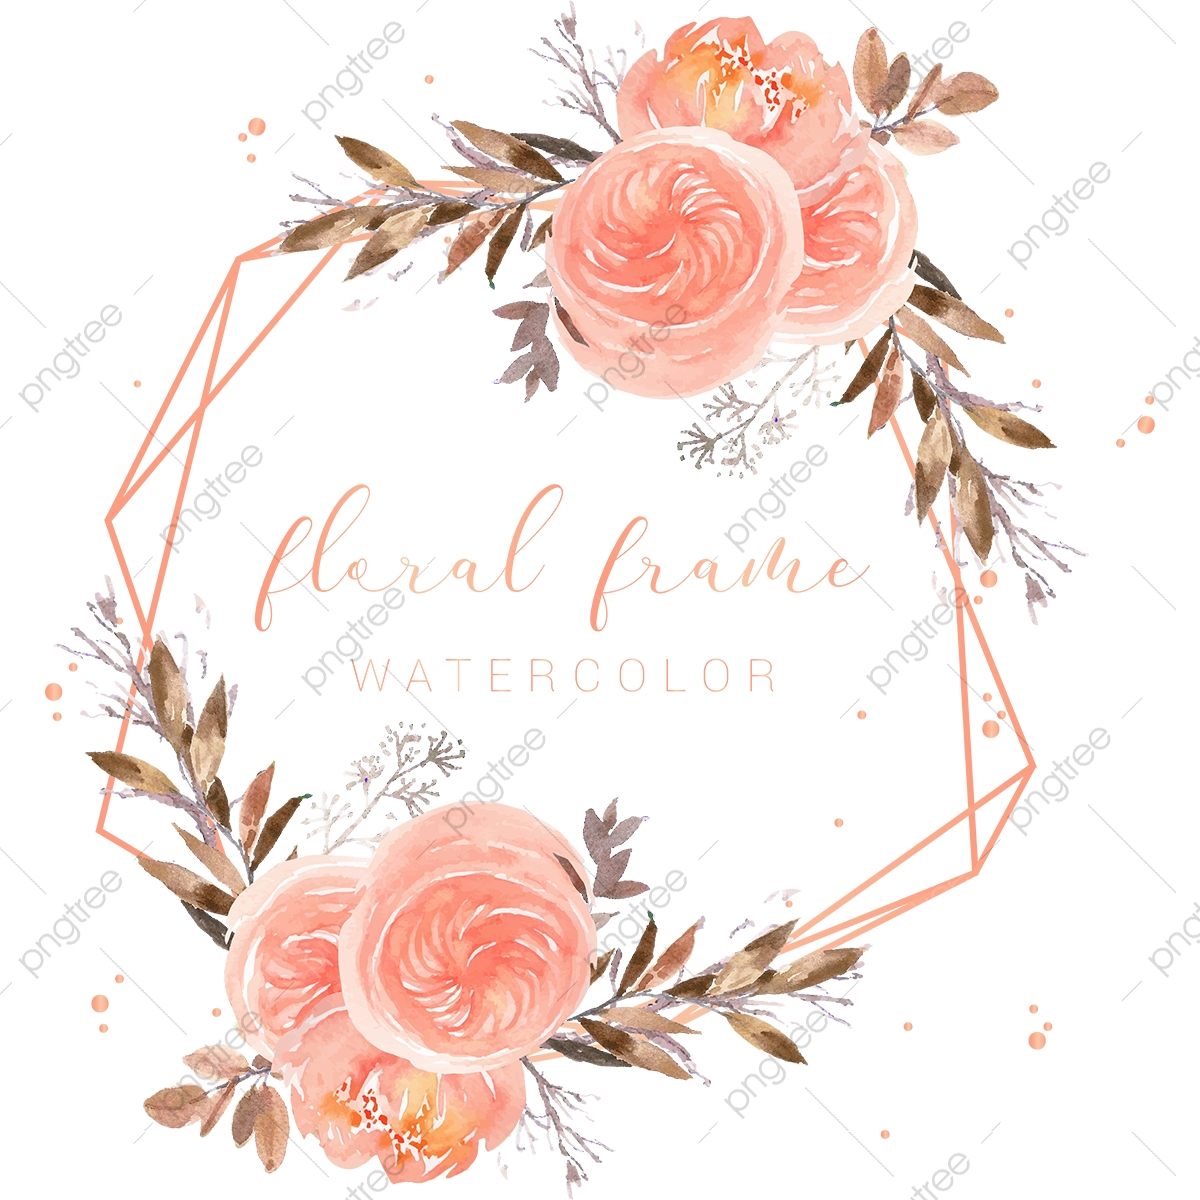 elegant peach frame watercolor peach flowers illustration floral branch branches png and vector with transparent background for free download https pngtree com freepng elegant peach frame watercolor peach flowers illustration 5257526 html